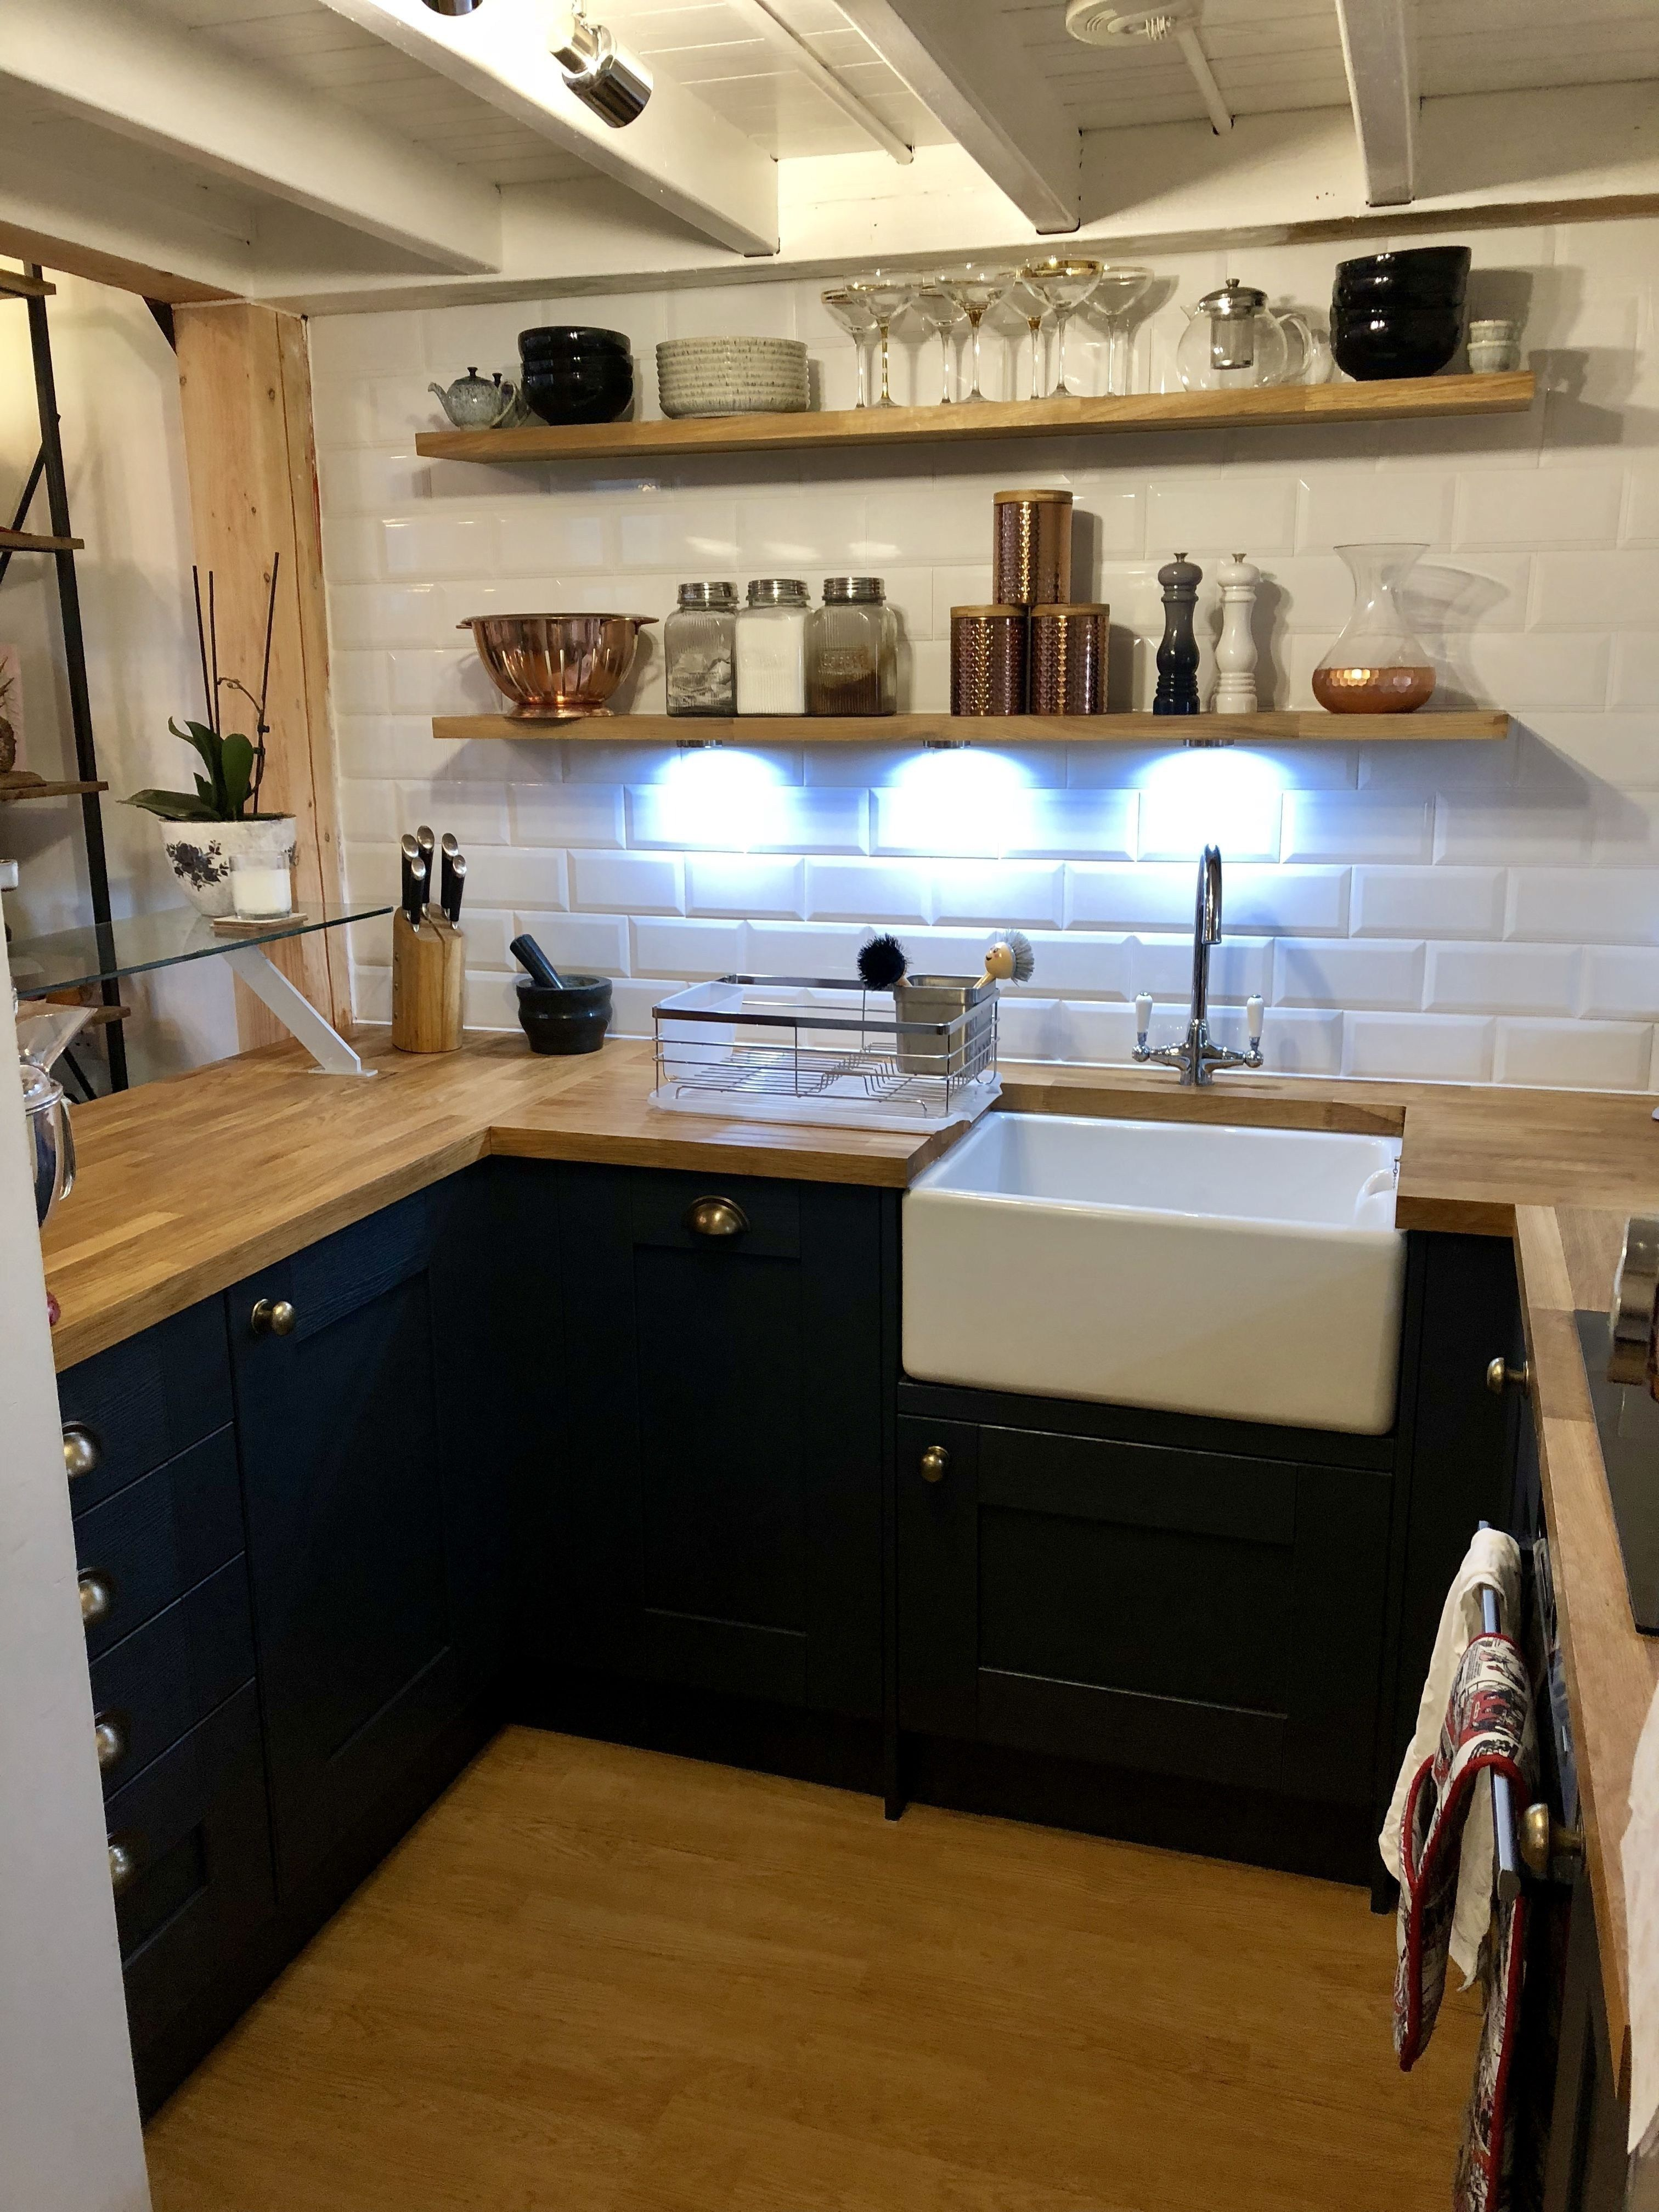 Beautiful Wickes Fitted Bedroom Furniture Small kitchen